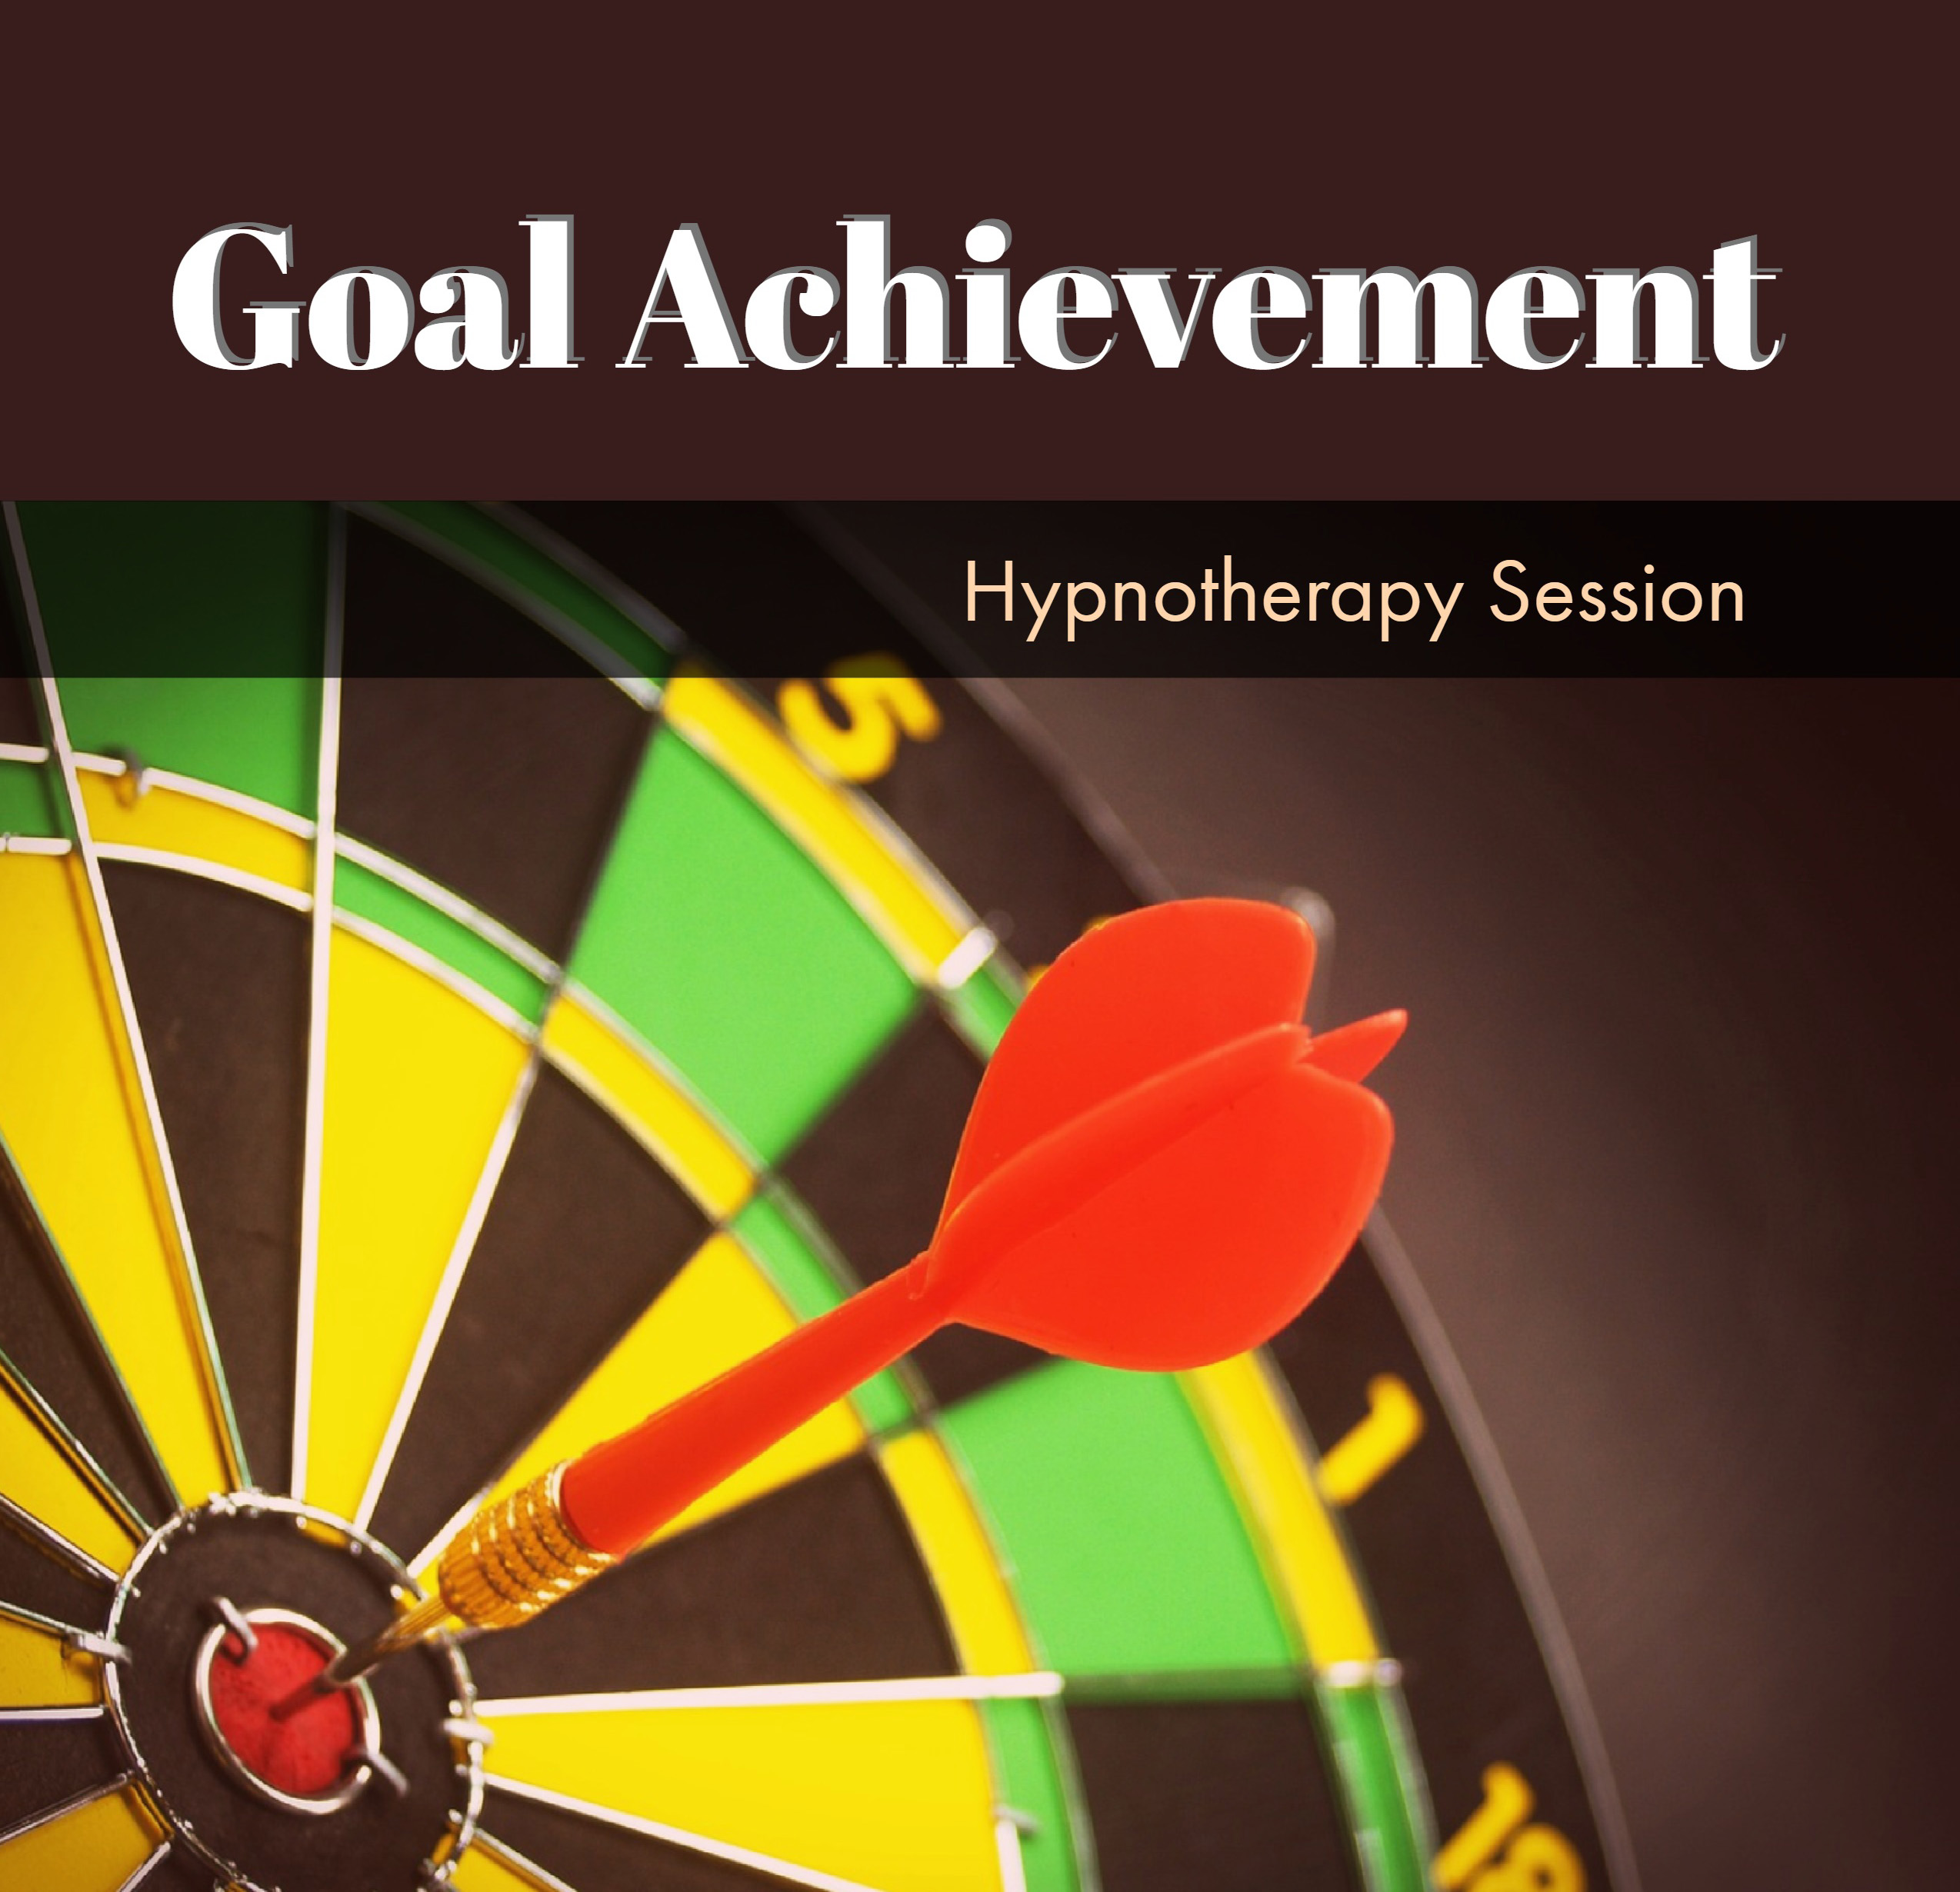 Goal Achievement Through Hypnosis with Don L  Price